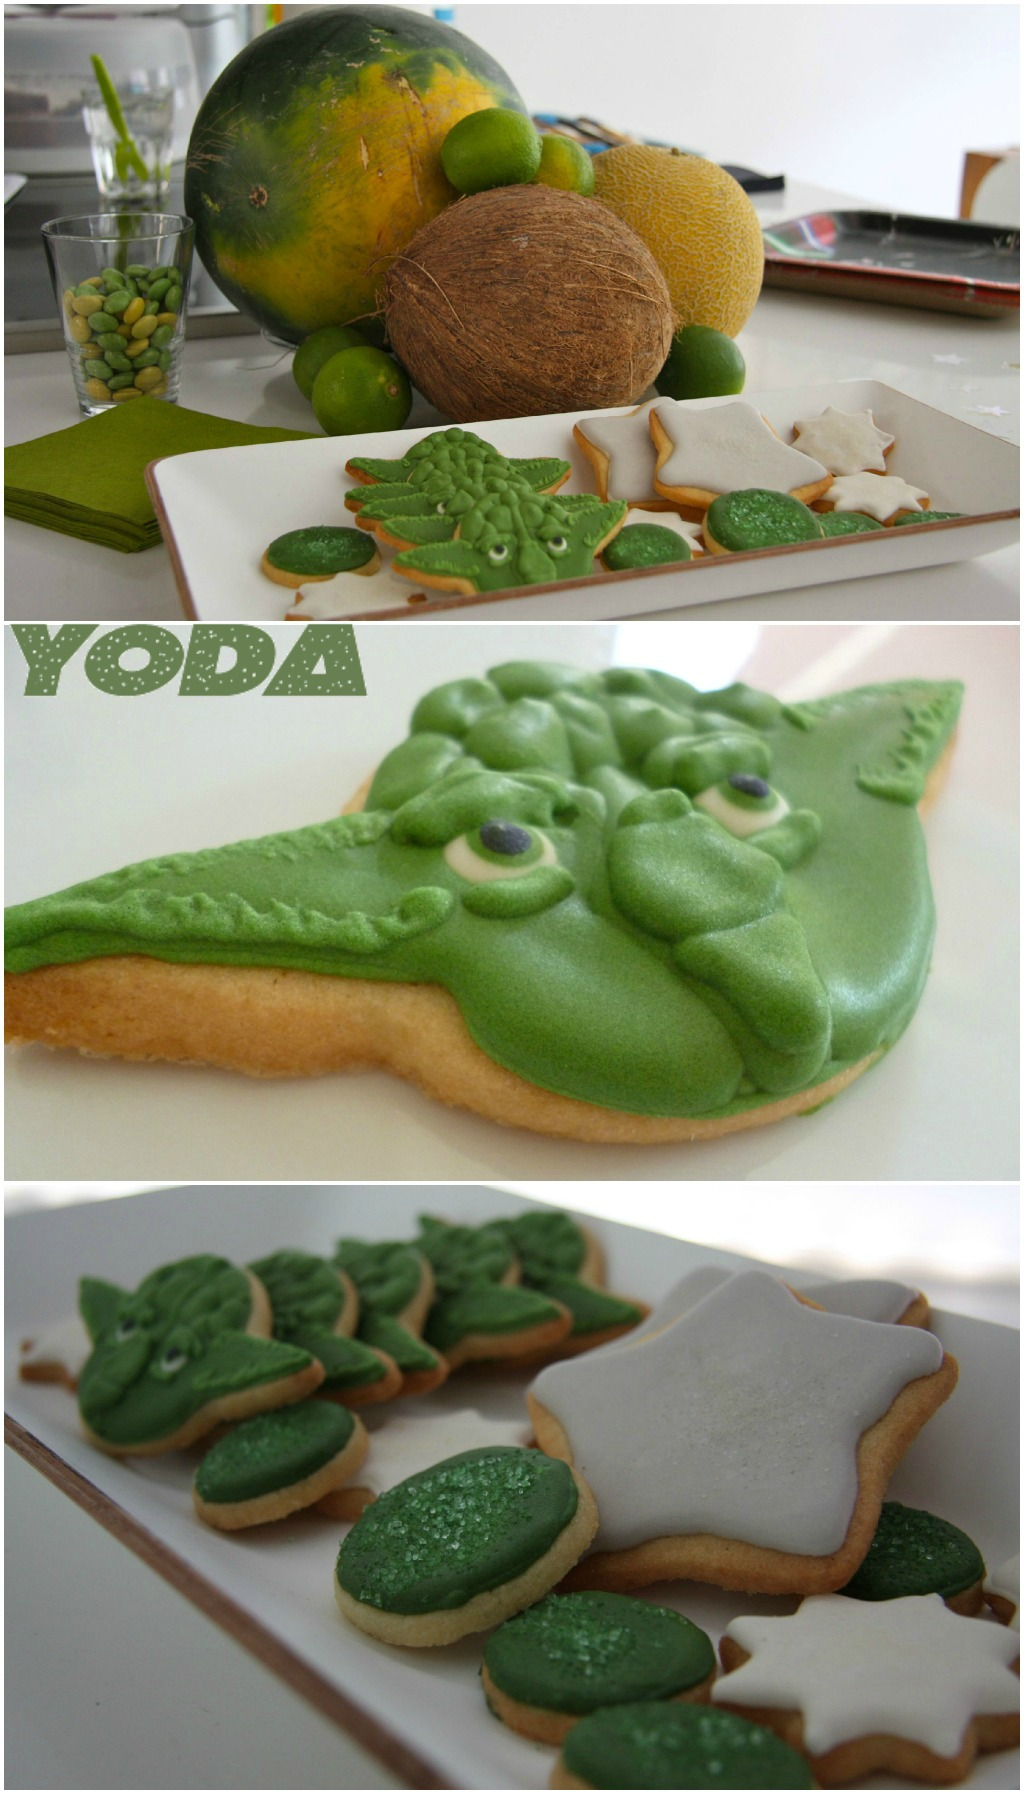 Star Wars Kids themed birthday party Yoda cookies kekse kindergeburtstag